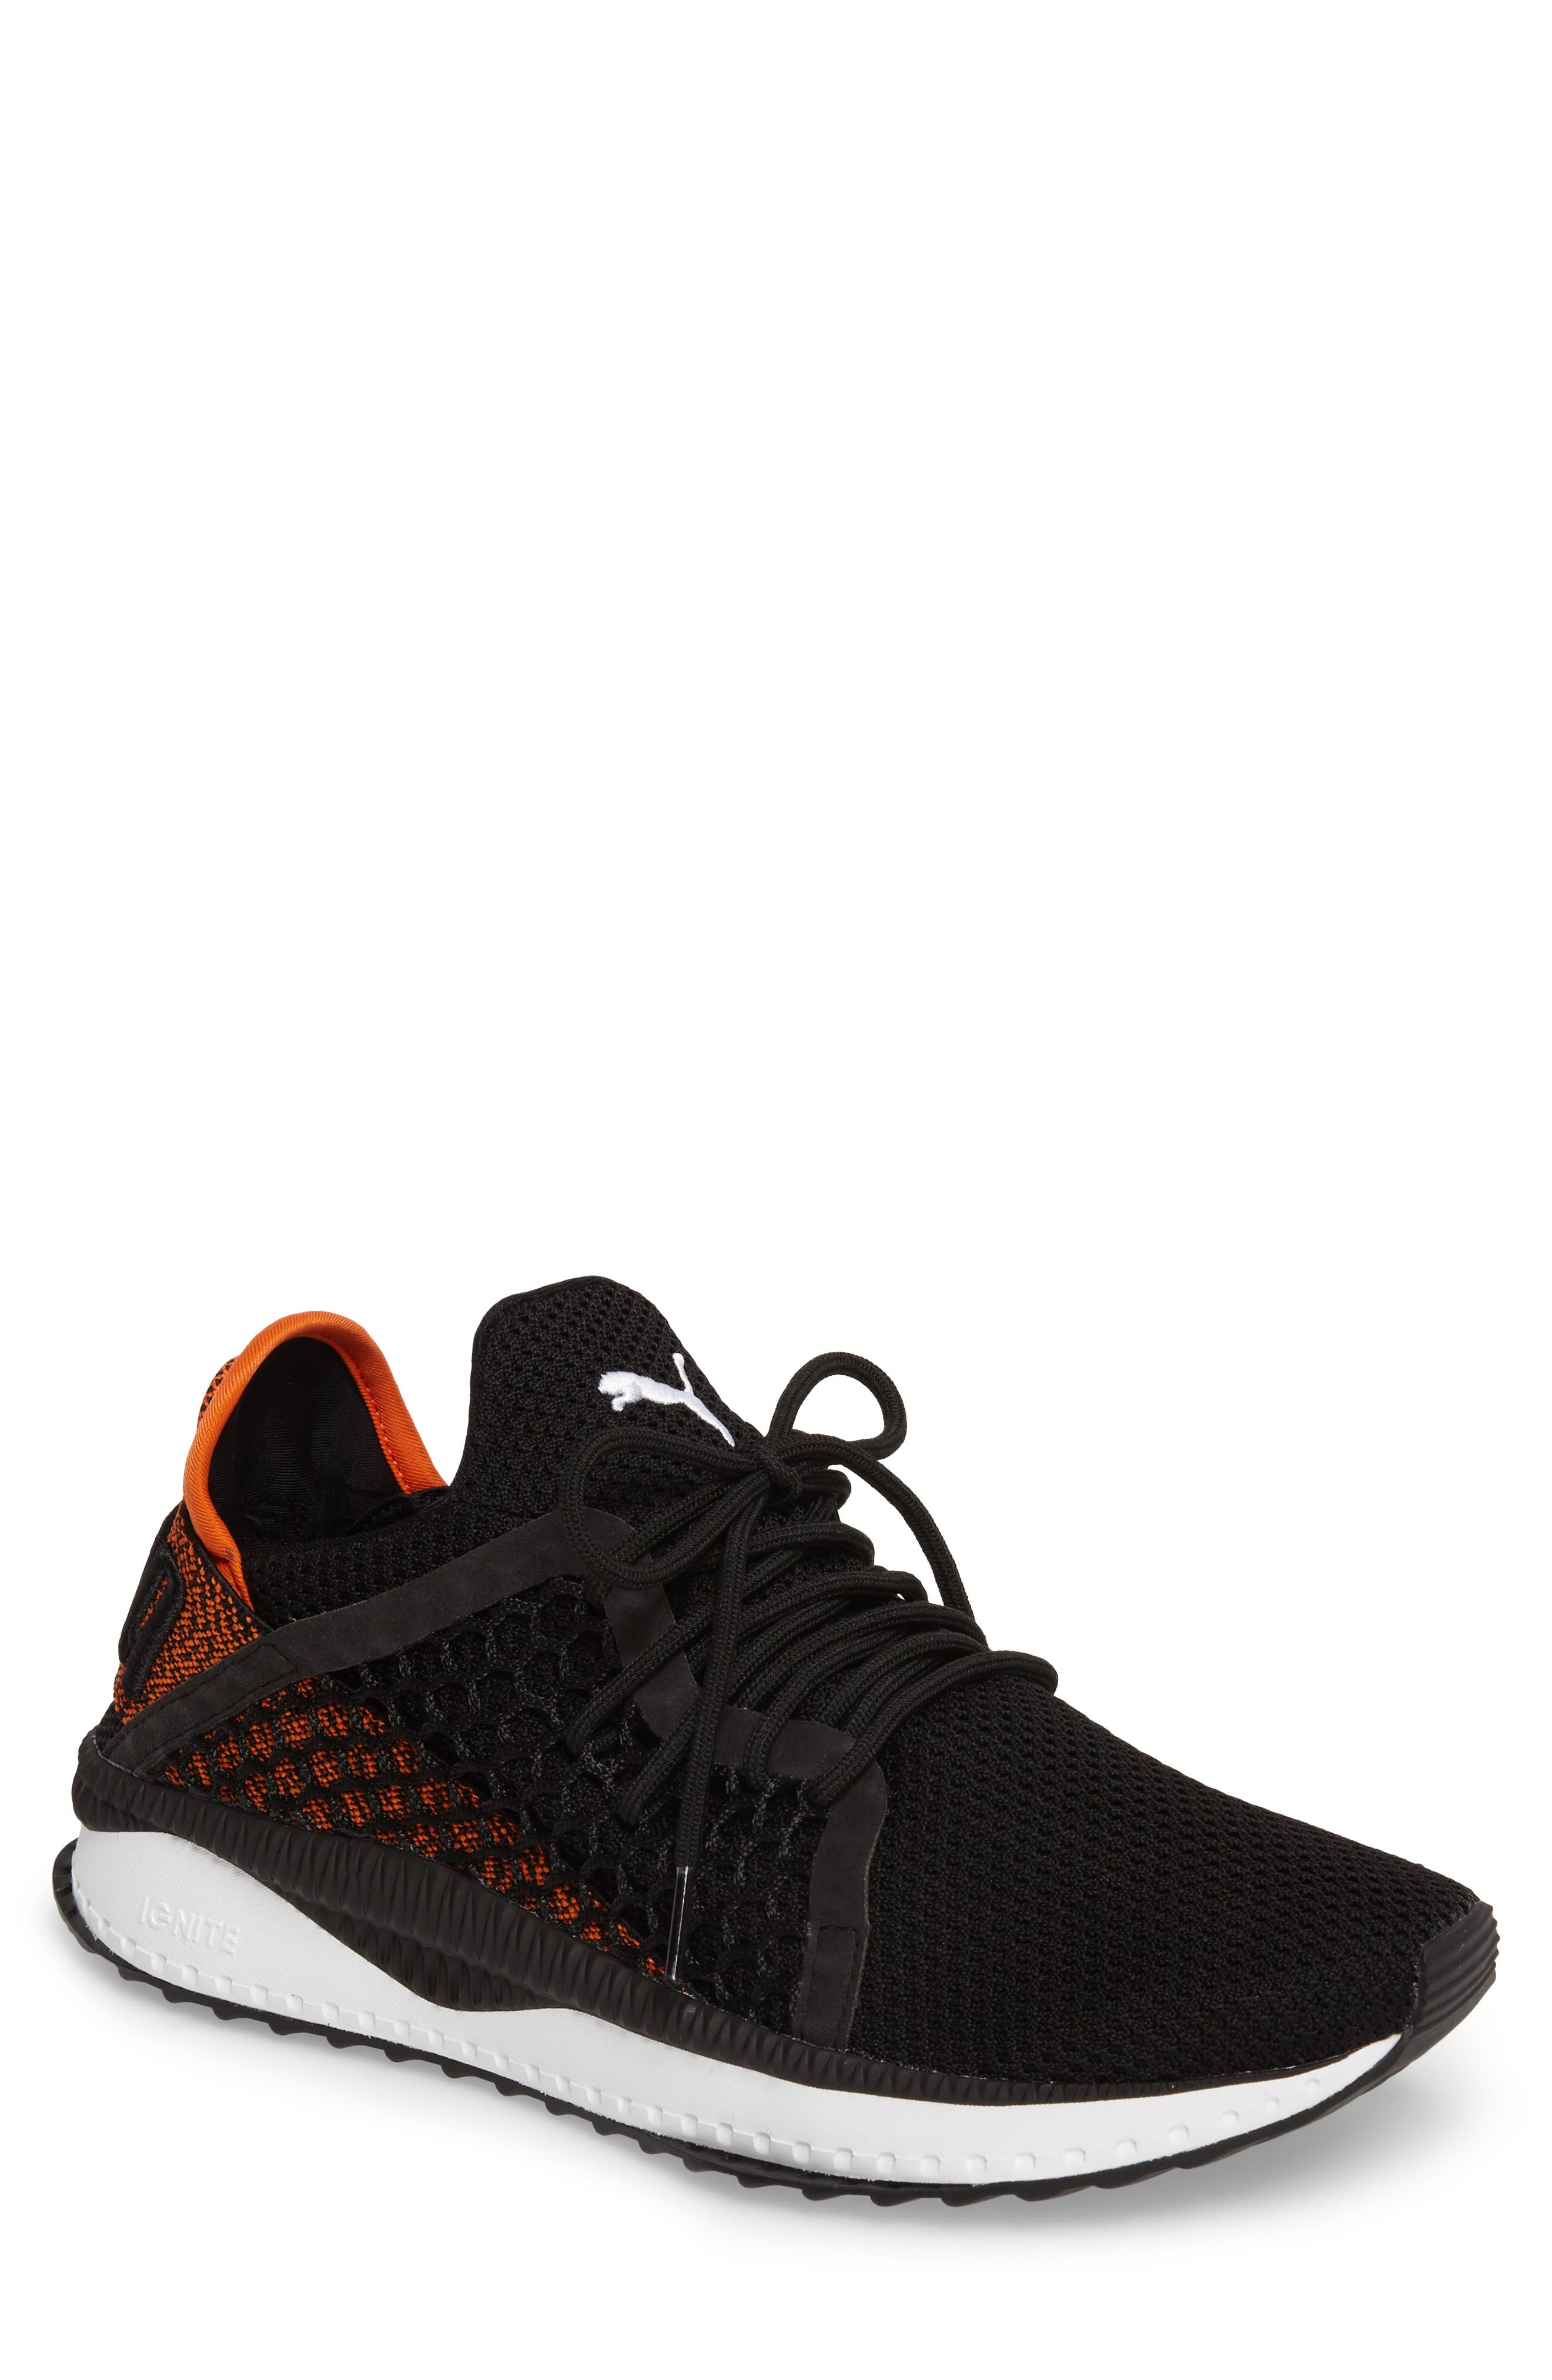 Main Image - PUMA Tsugi Netfit Training Shoe (Men)